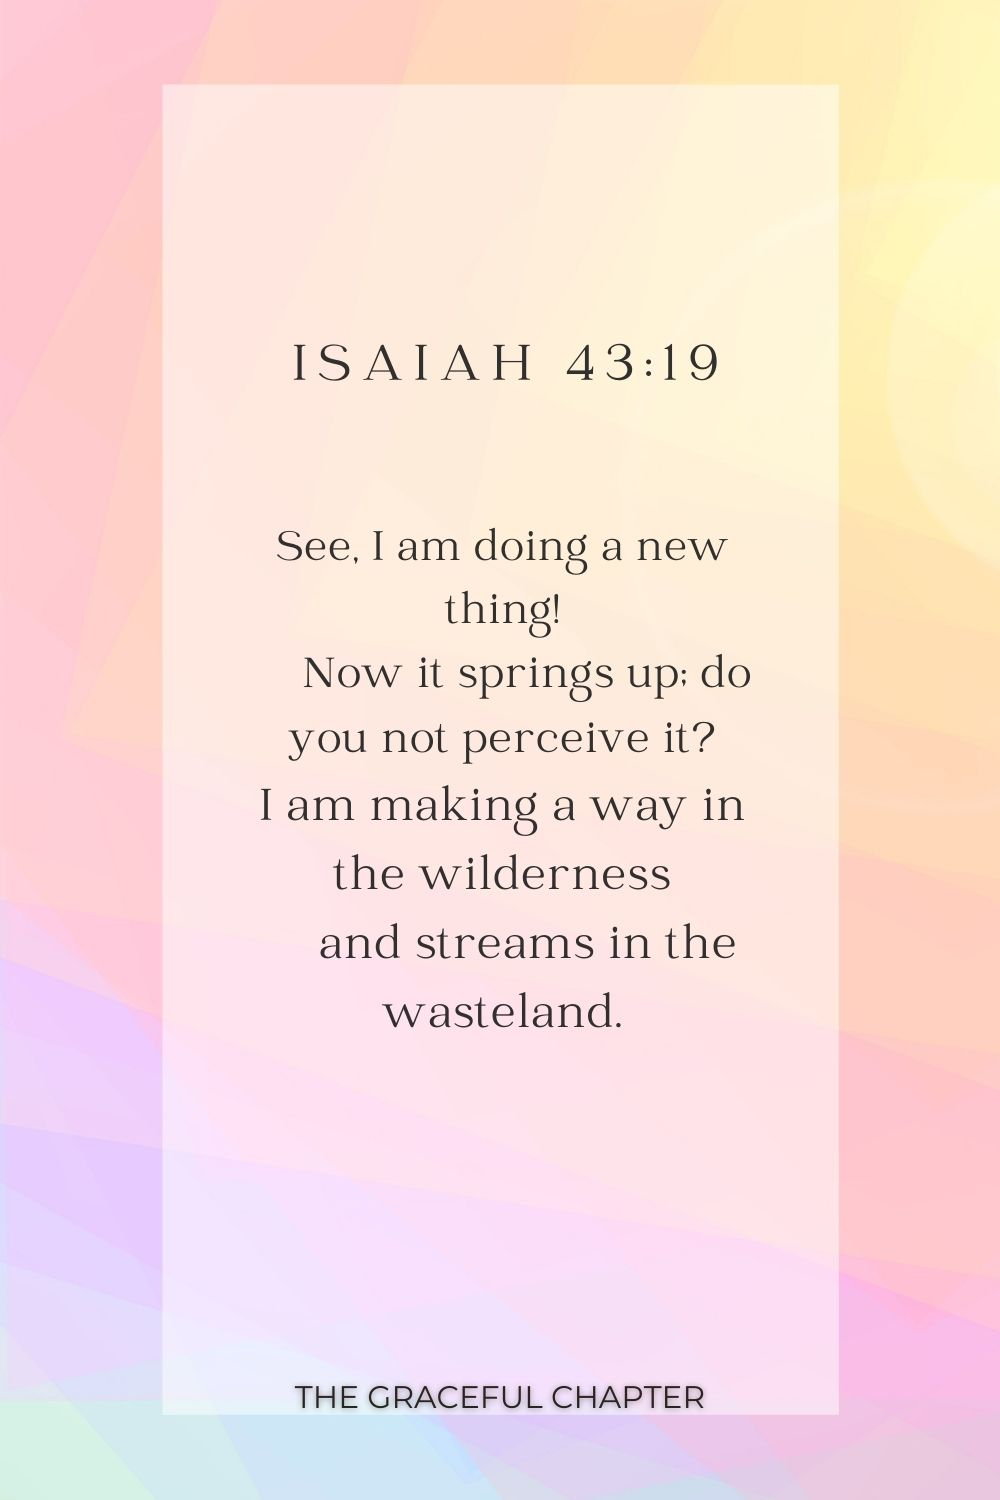 See, I am doing a new thing!     Now it springs up; do you not perceive it? I am making a way in the wilderness     and streams in the wasteland. See, I am doing a new thing!     Now it springs up; do you not perceive it? I am making a way in the wilderness     and streams in the wasteland. Isaiah 43:19